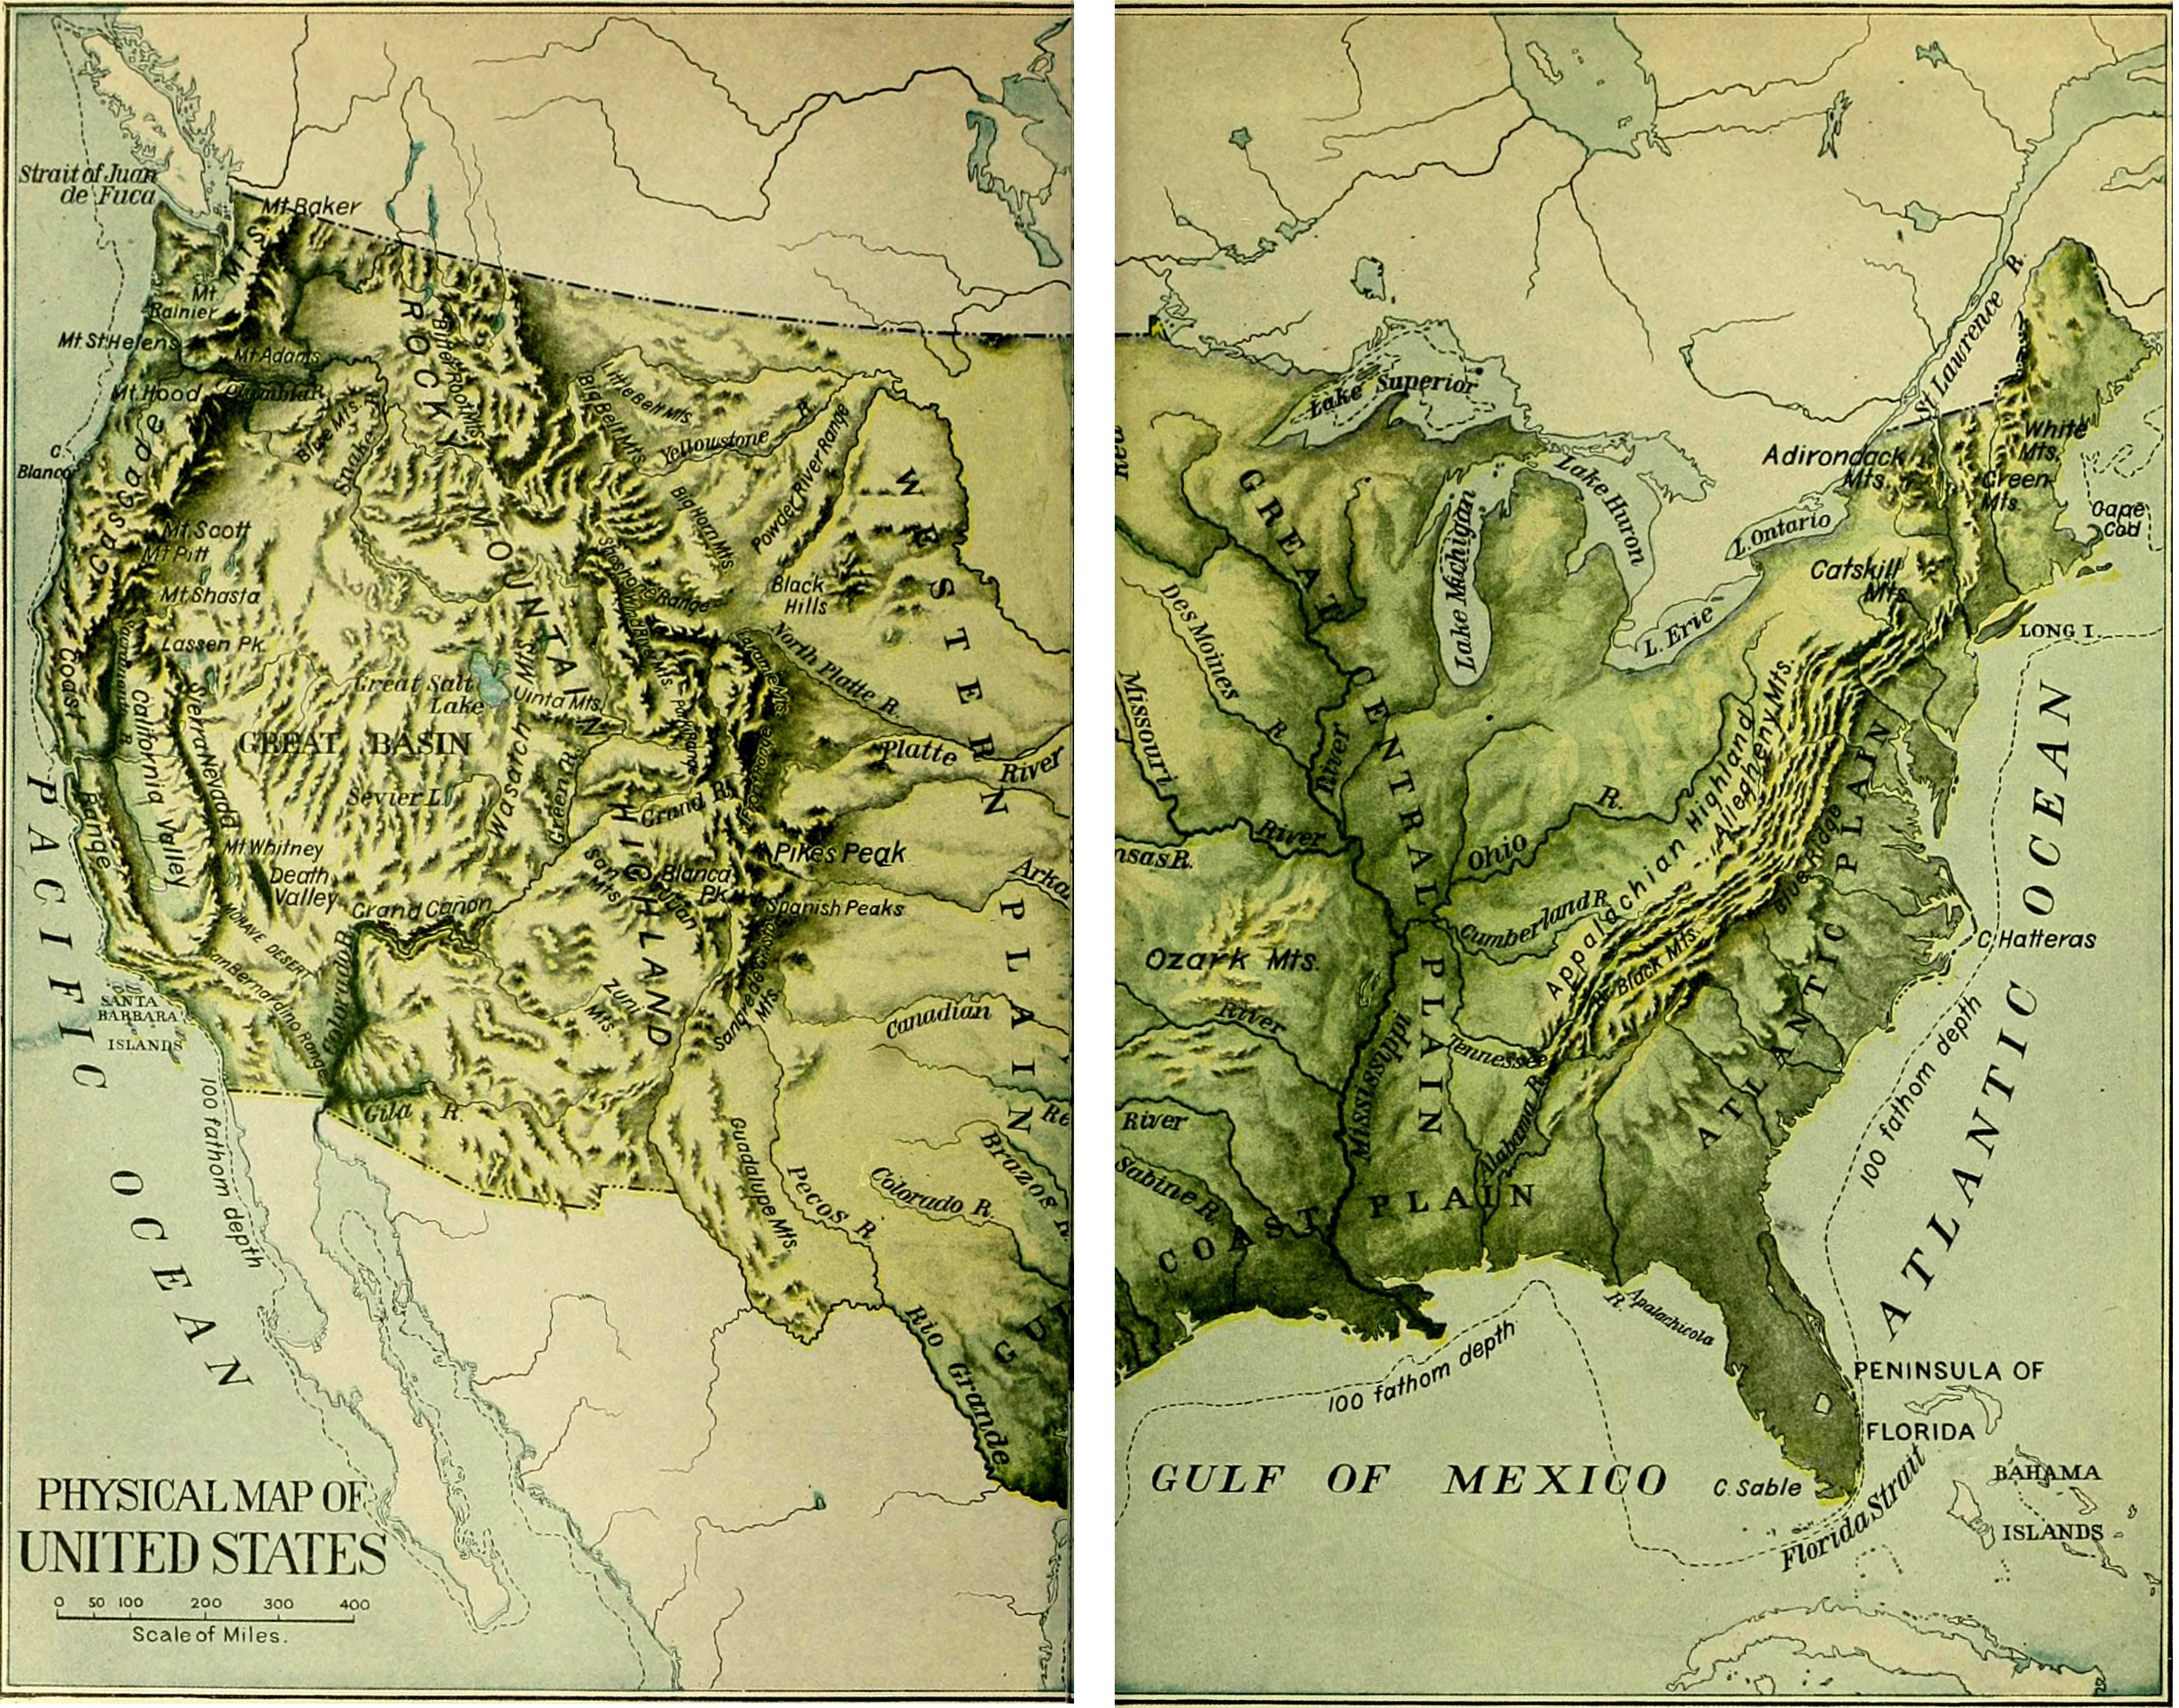 FileNIE United States Physical Mapjpg Wikimedia Commons - Us map 1905